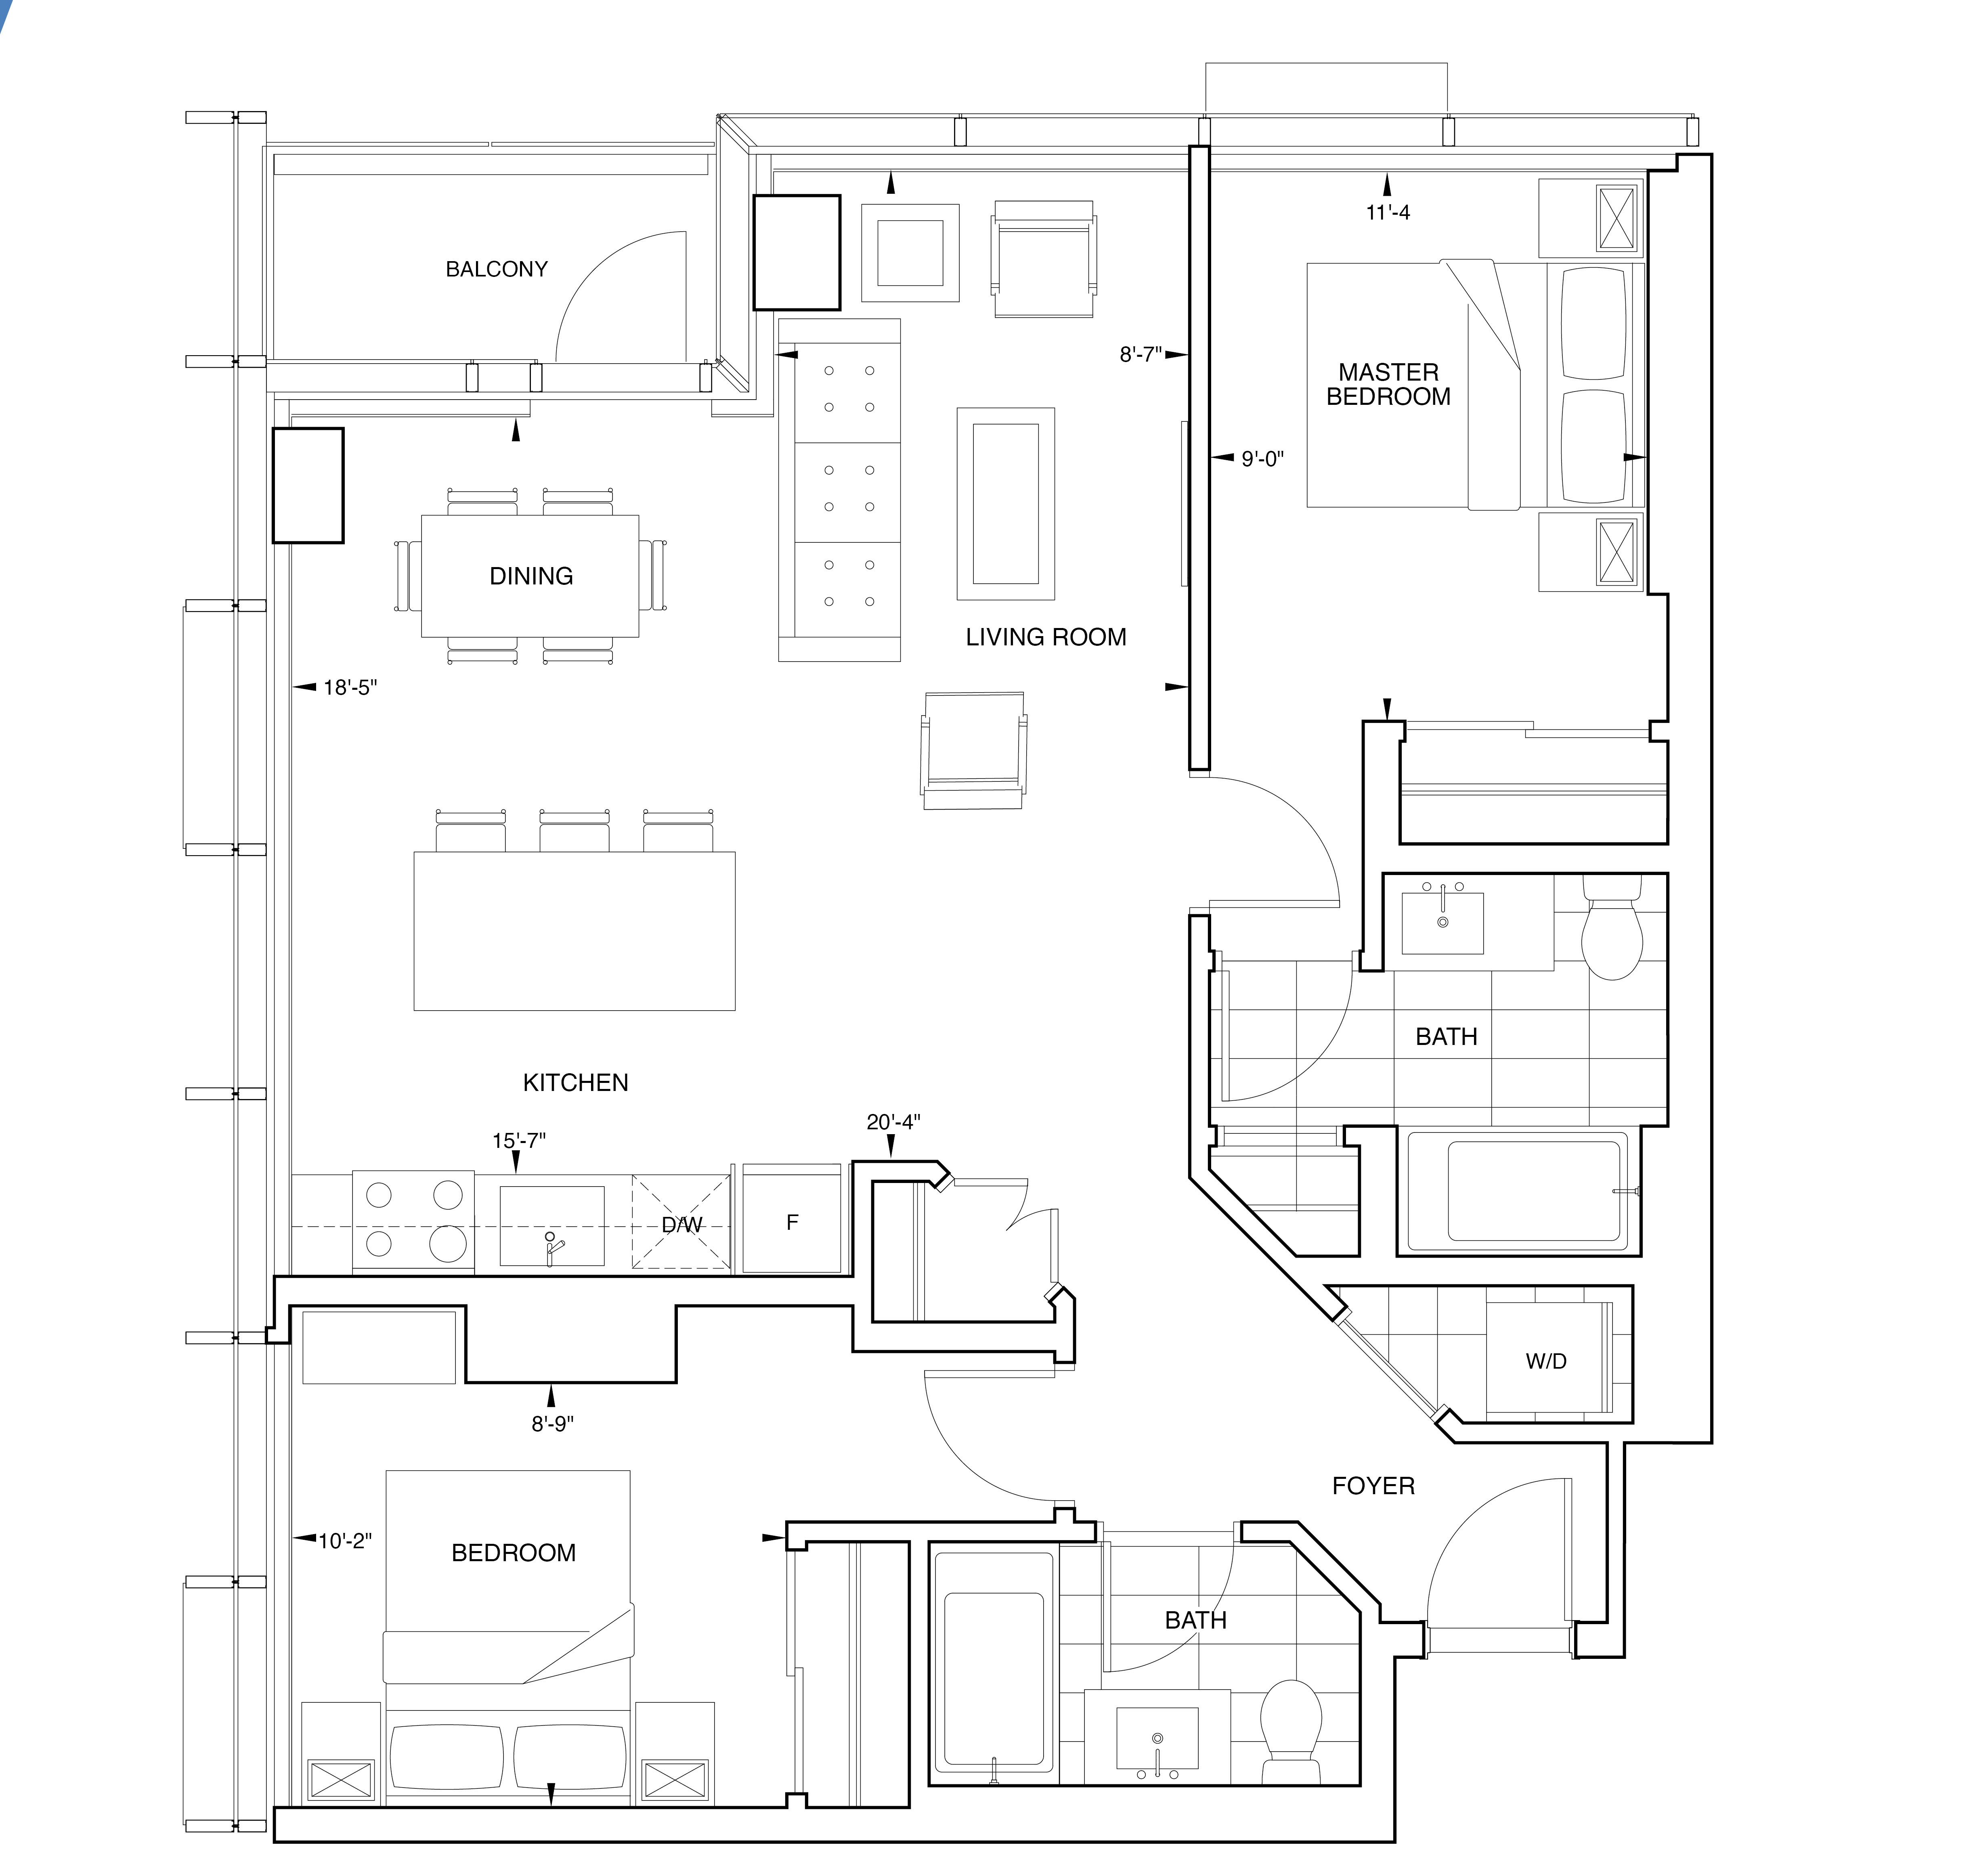 Floorplan for SKY Residence K1